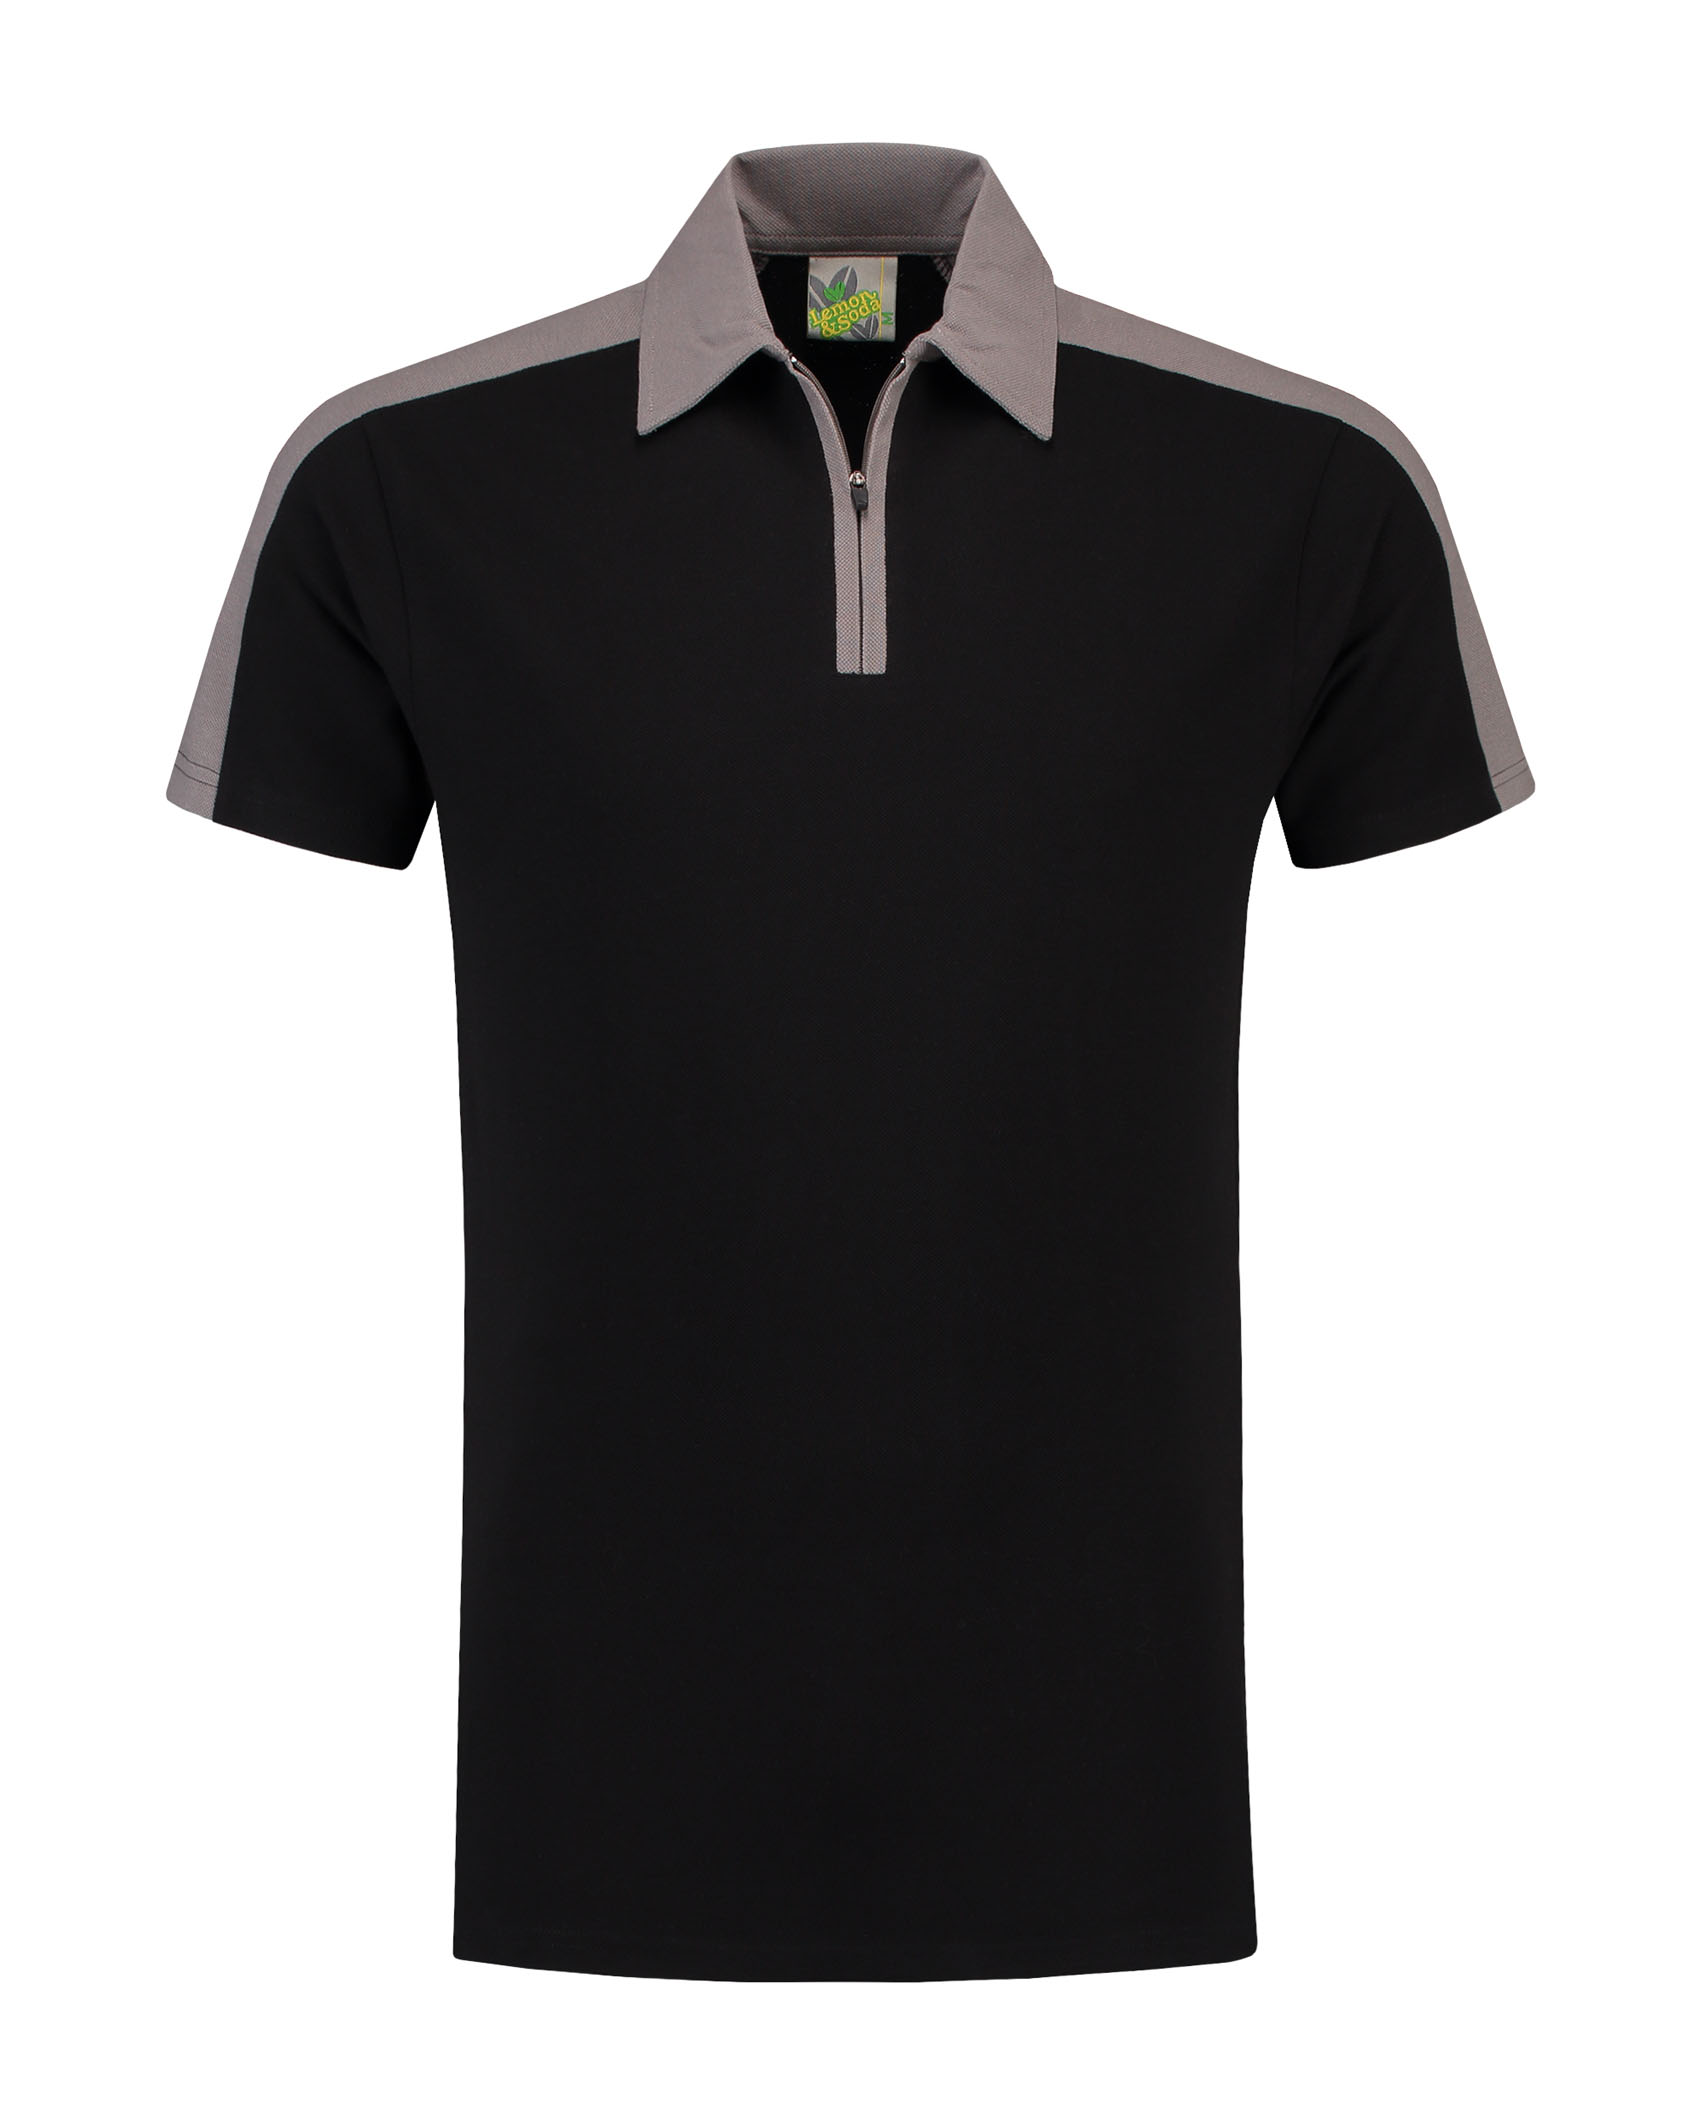 L&S Zip Polo for him